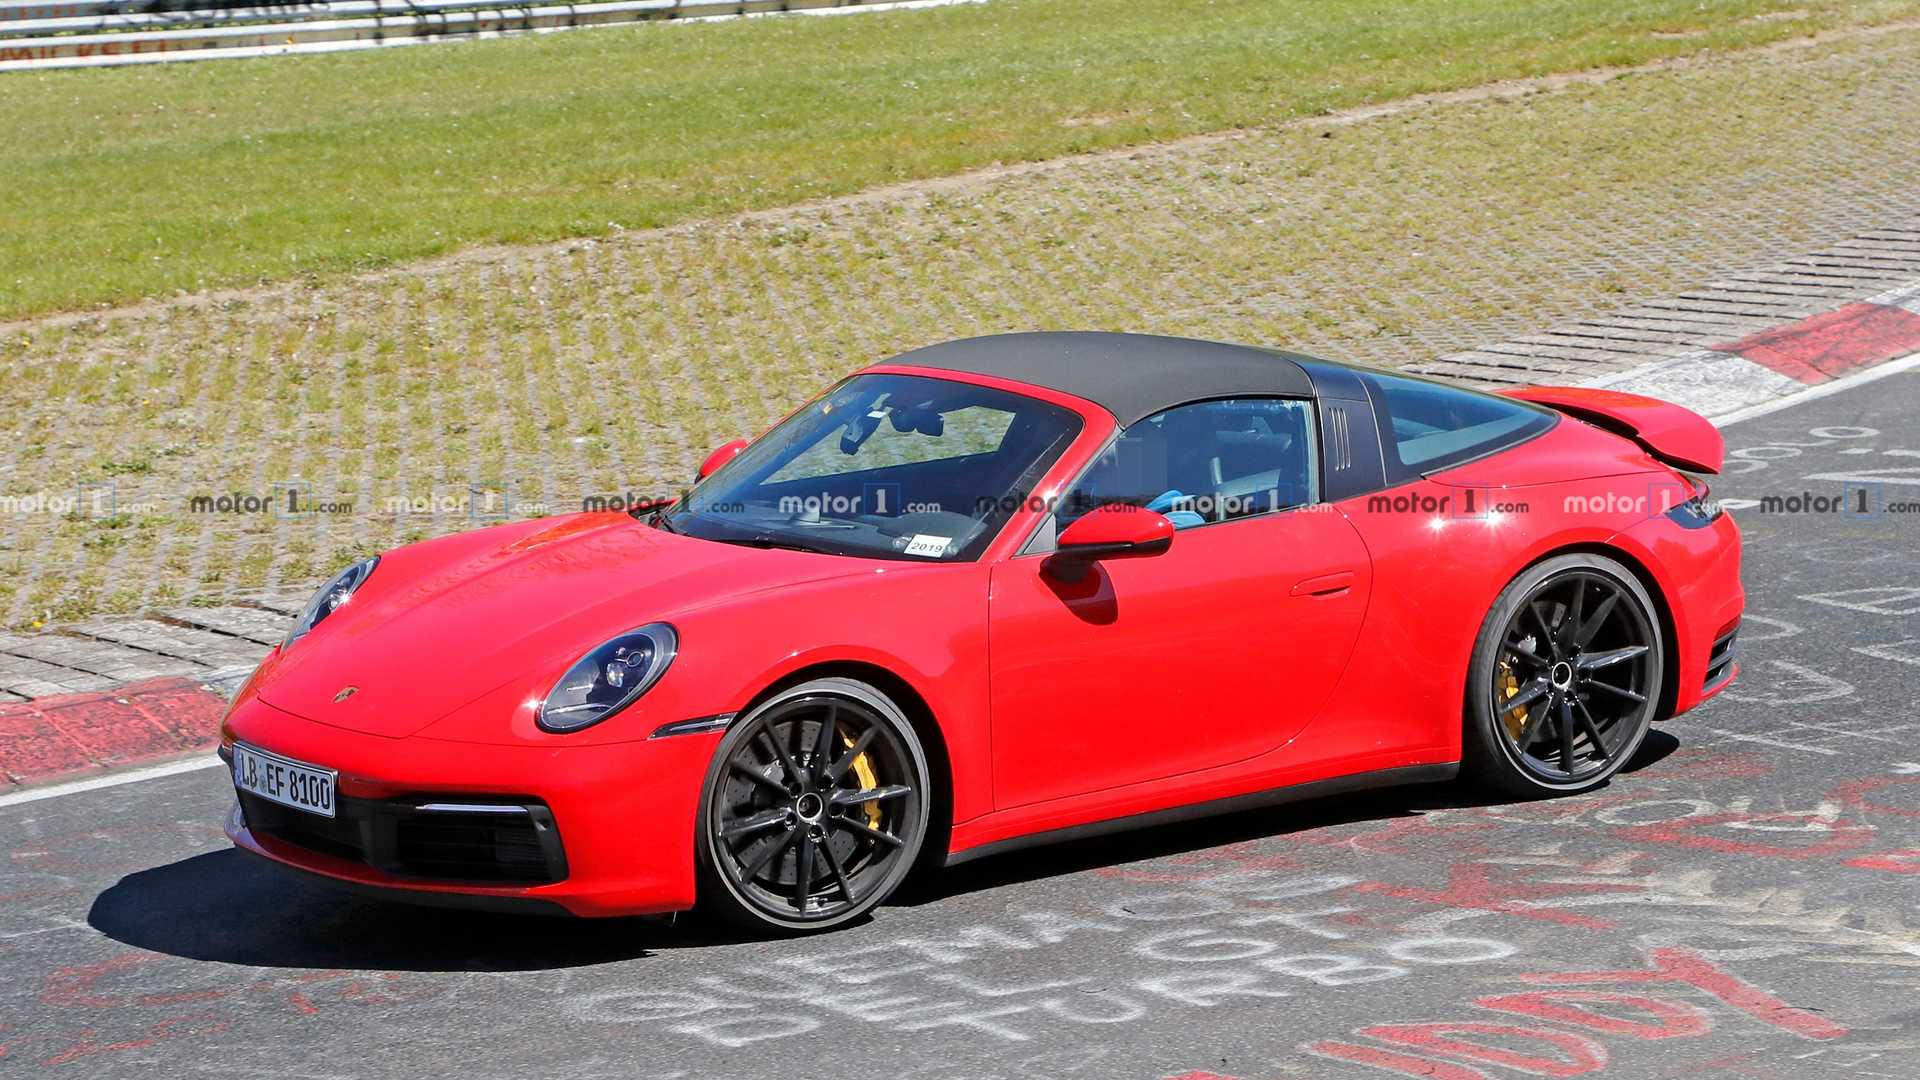 2020 Porsche 911 Targa Spied Looking Regal In Red At The \u0027Ring